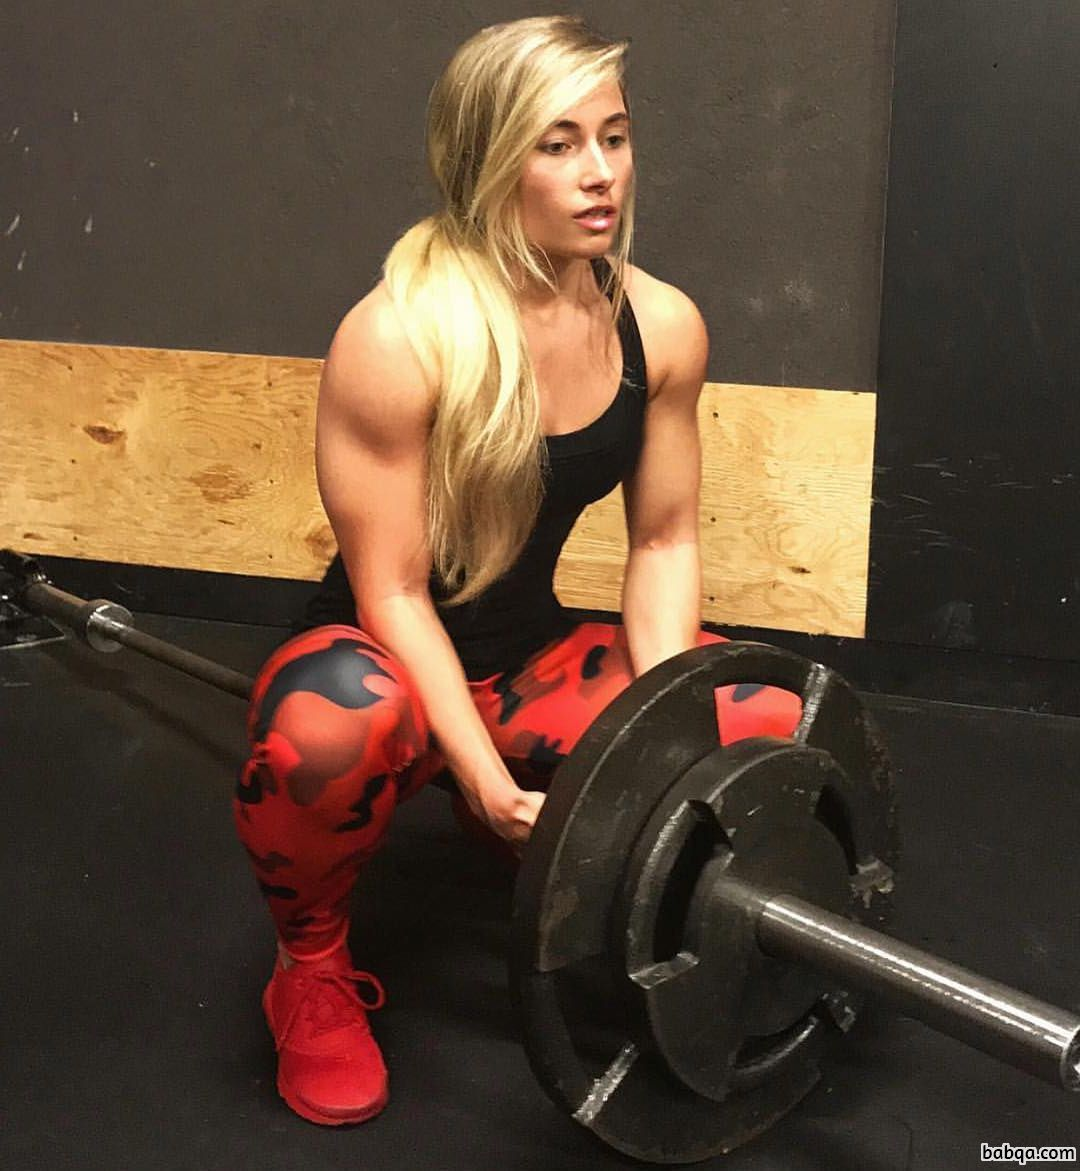 beautiful lady with strong body and muscle biceps photo from instagram